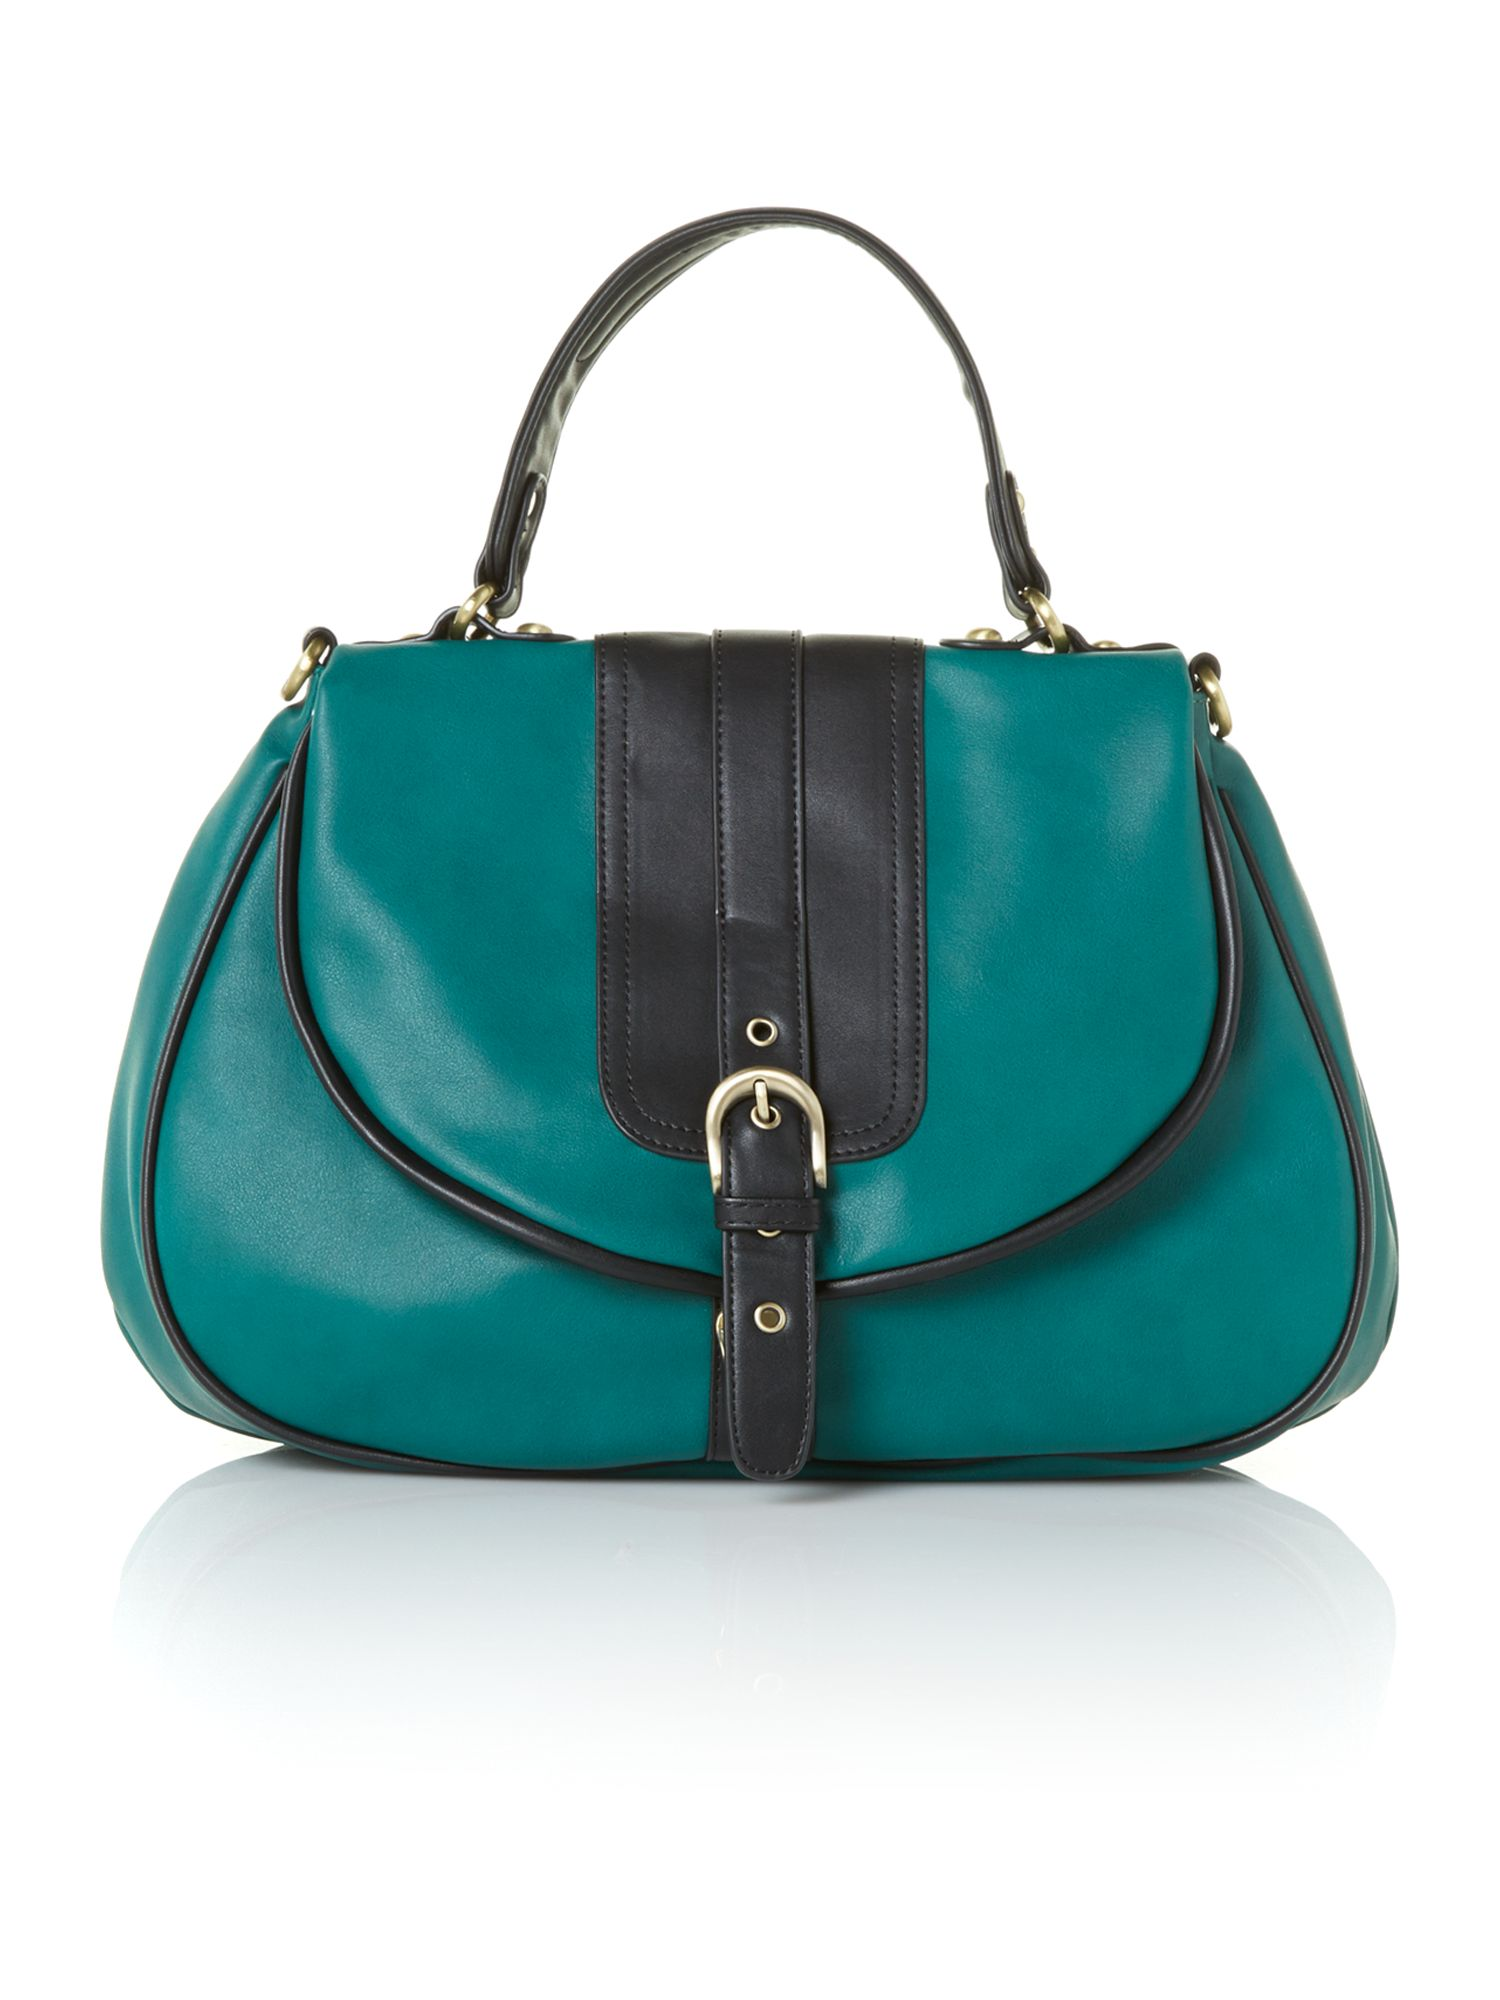 Harrie green satchel bag